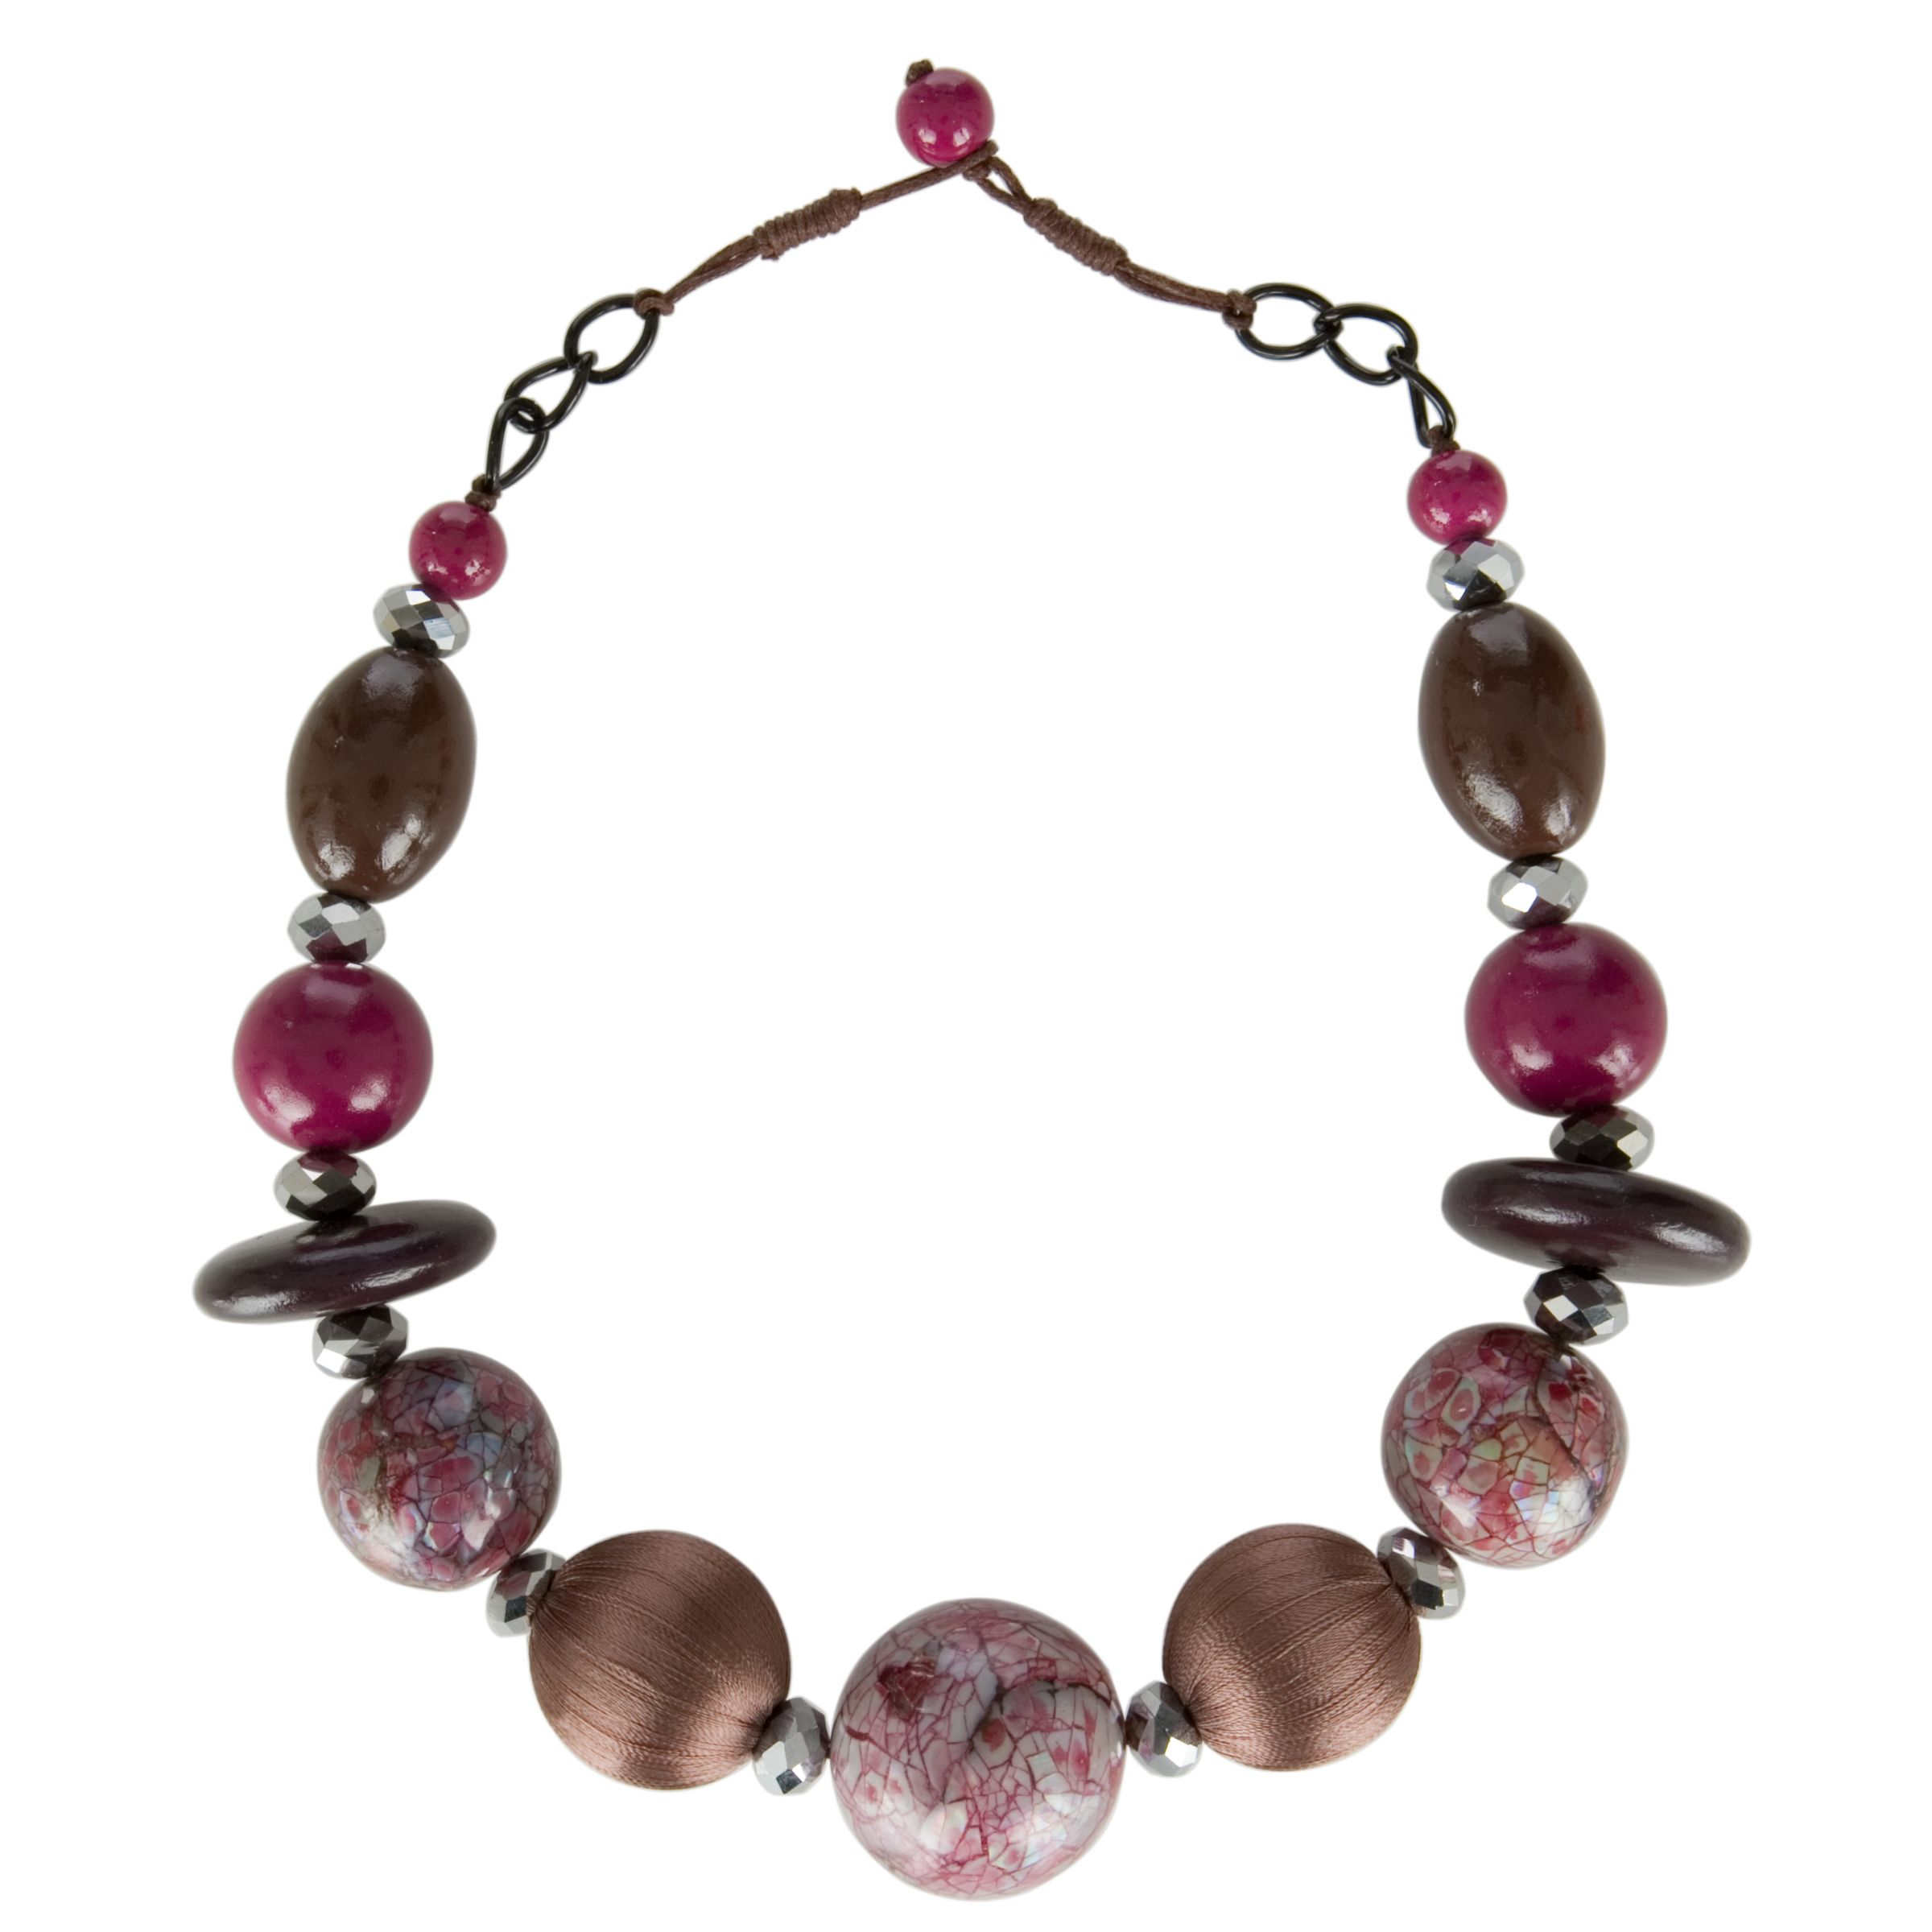 One Button Short Textured Beads Necklace, Fuschia/Damson